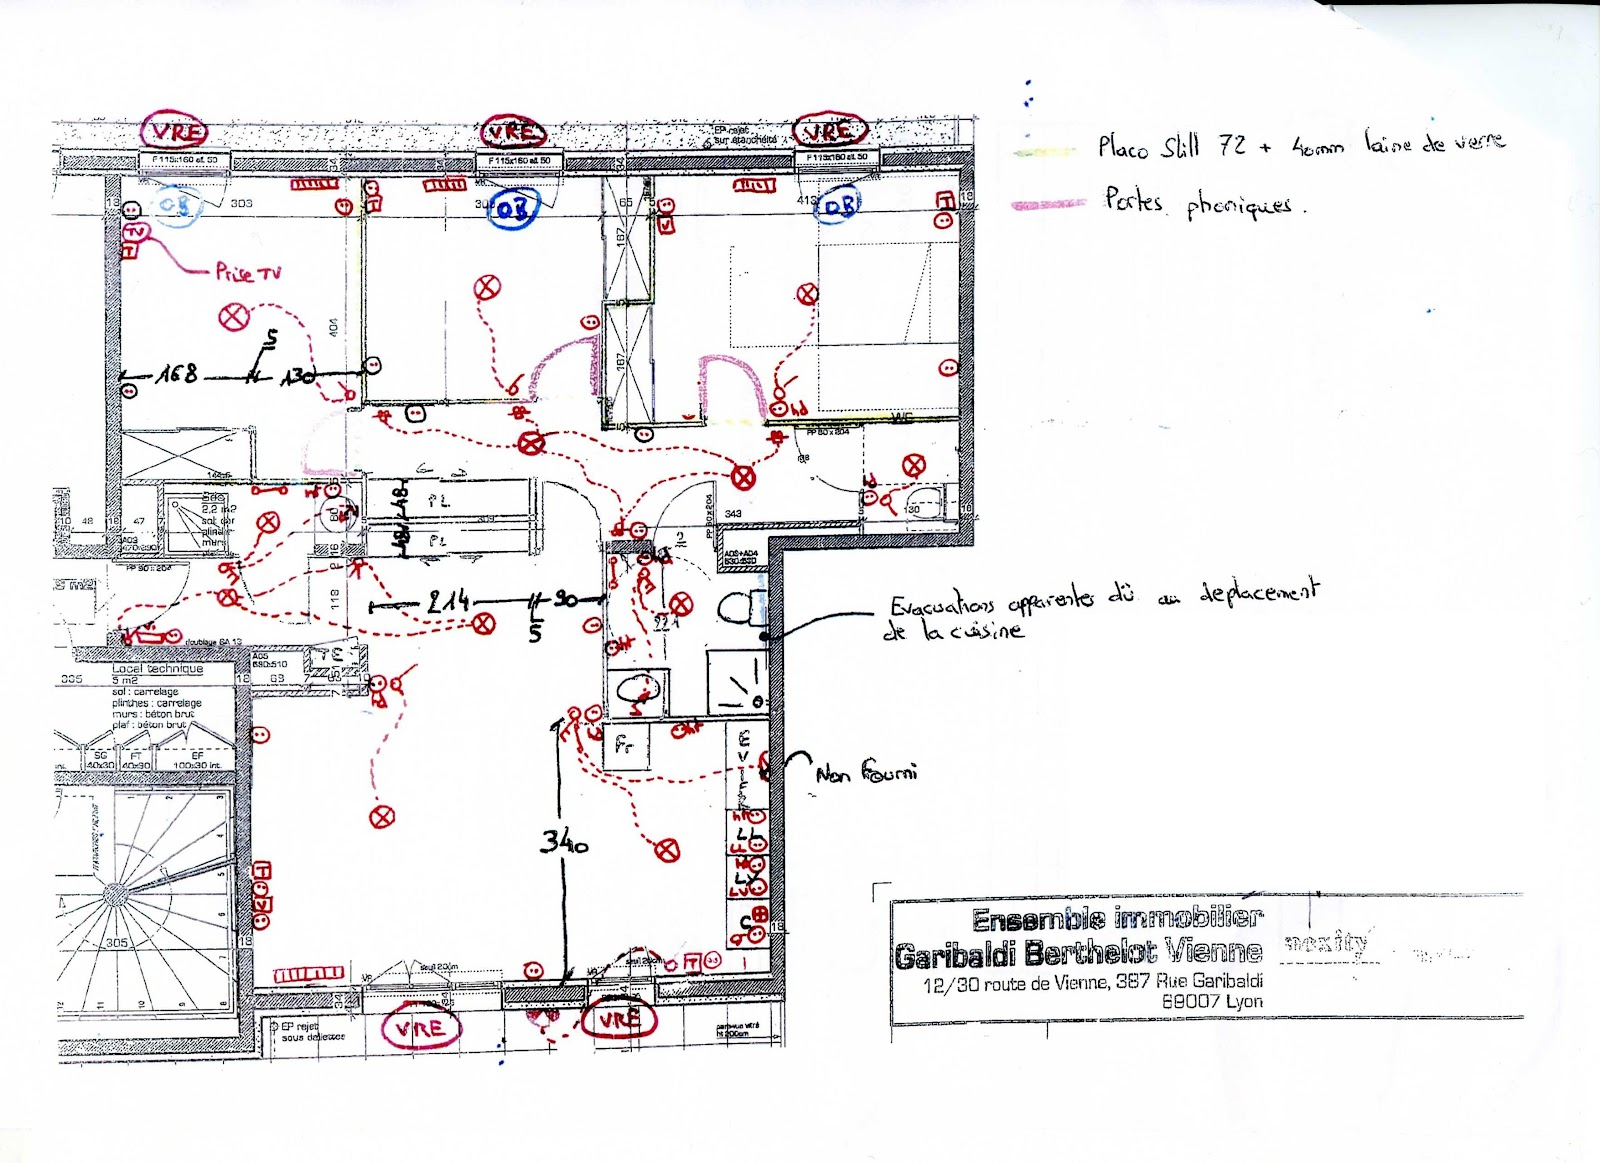 Logiciel gratuit maison decoration devis onstruction for Dessiner les plans de sa maison